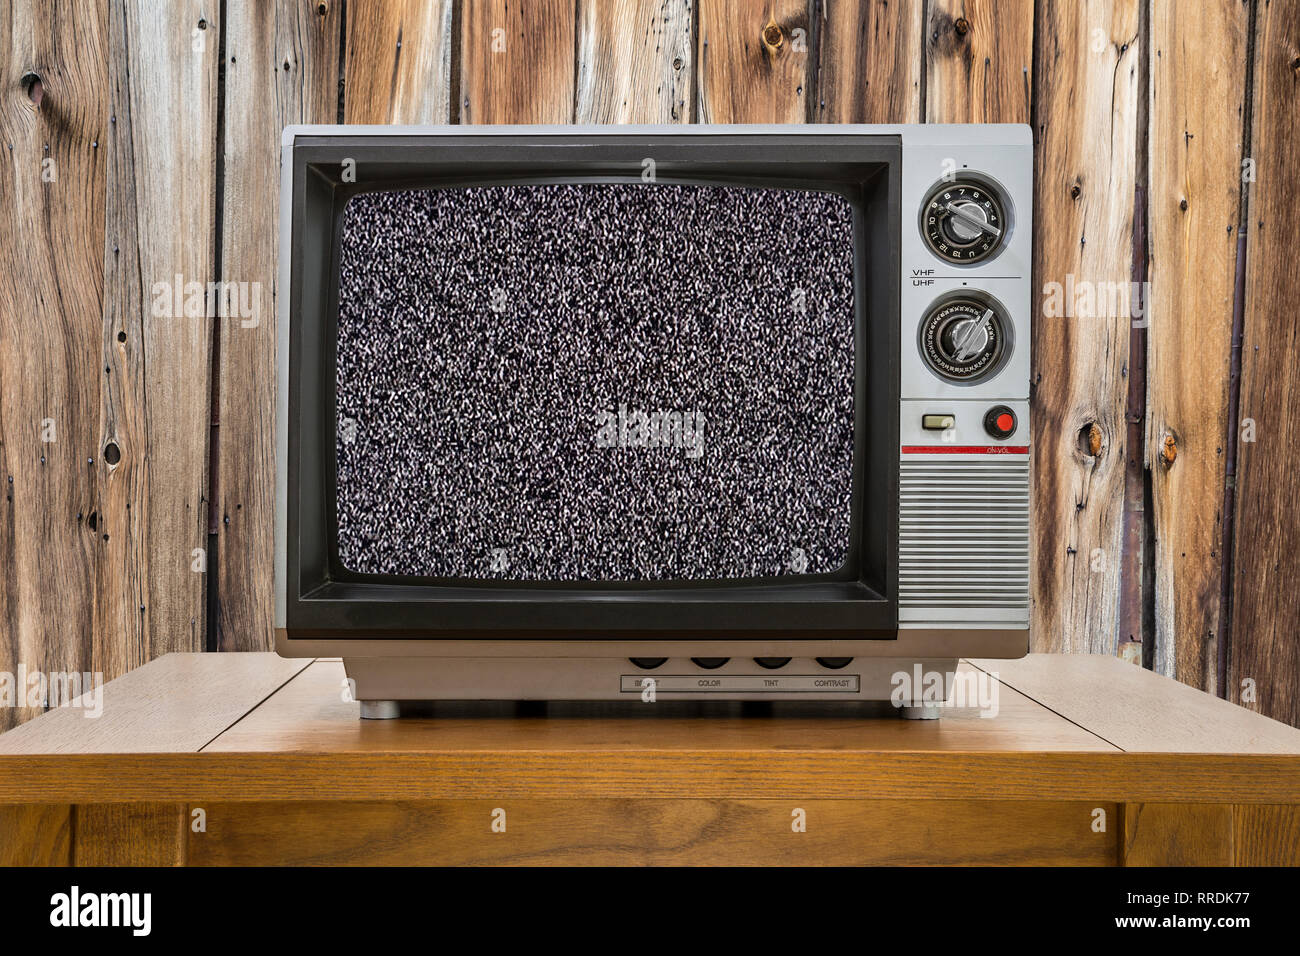 Vintage portable television on old table with wood wall and static screen. - Stock Image